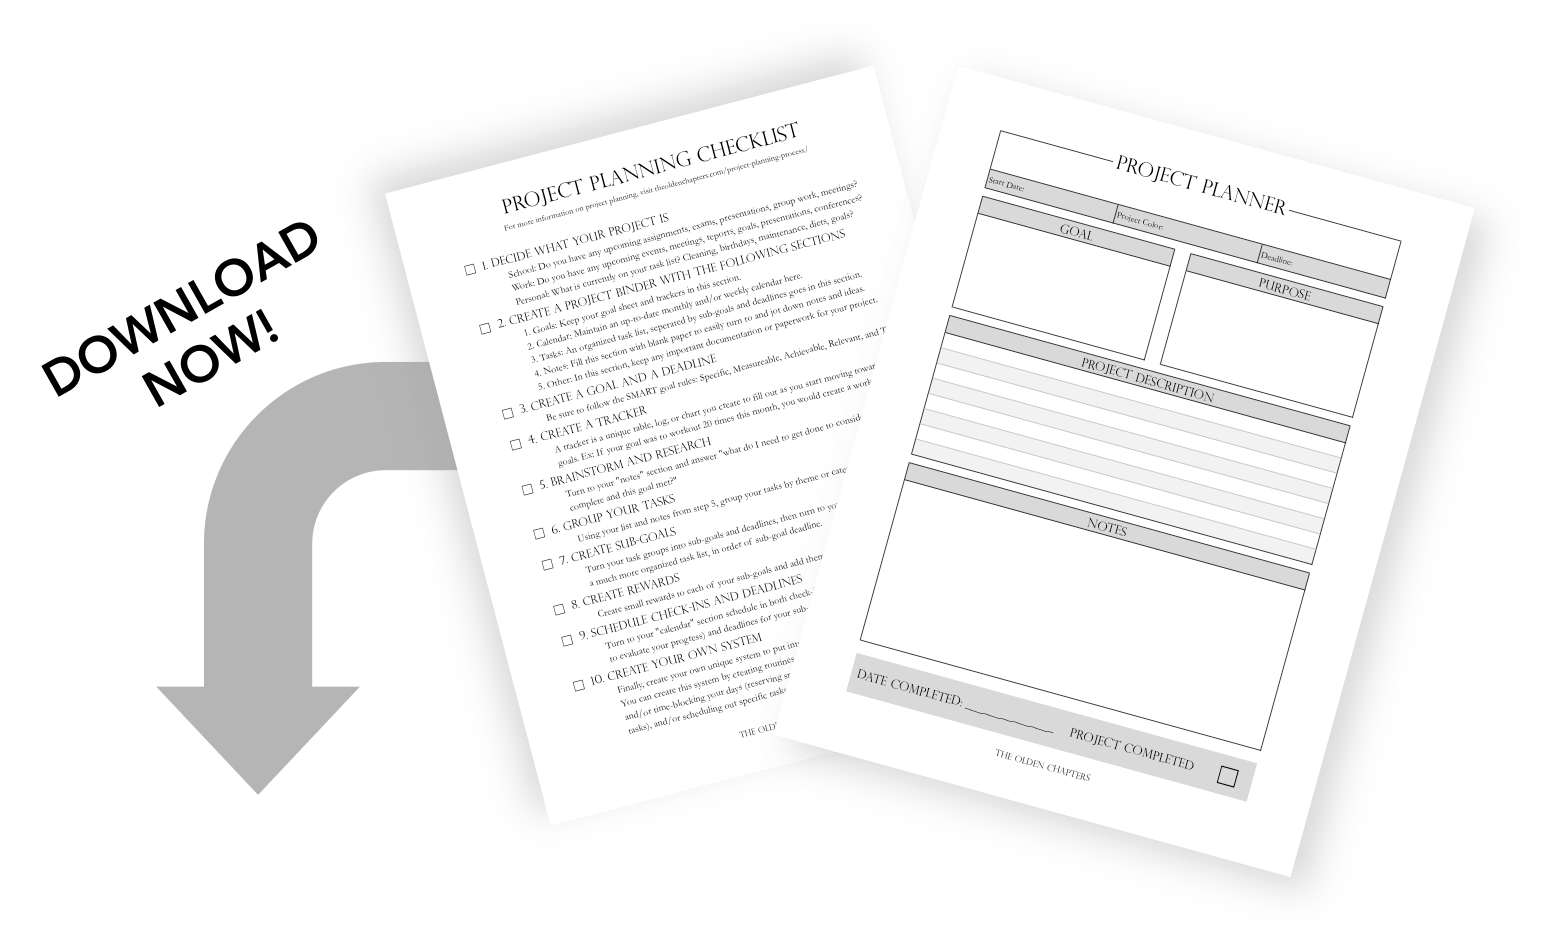 Learn how to conquer the project planning process in ten easy steps. This is one of the best productivity tips for college students looking to stay organized and better their time management. Includes a free project planning printable to stay organized and accomplish your biggest tasks. Read now to learn more time management and productivity tips!